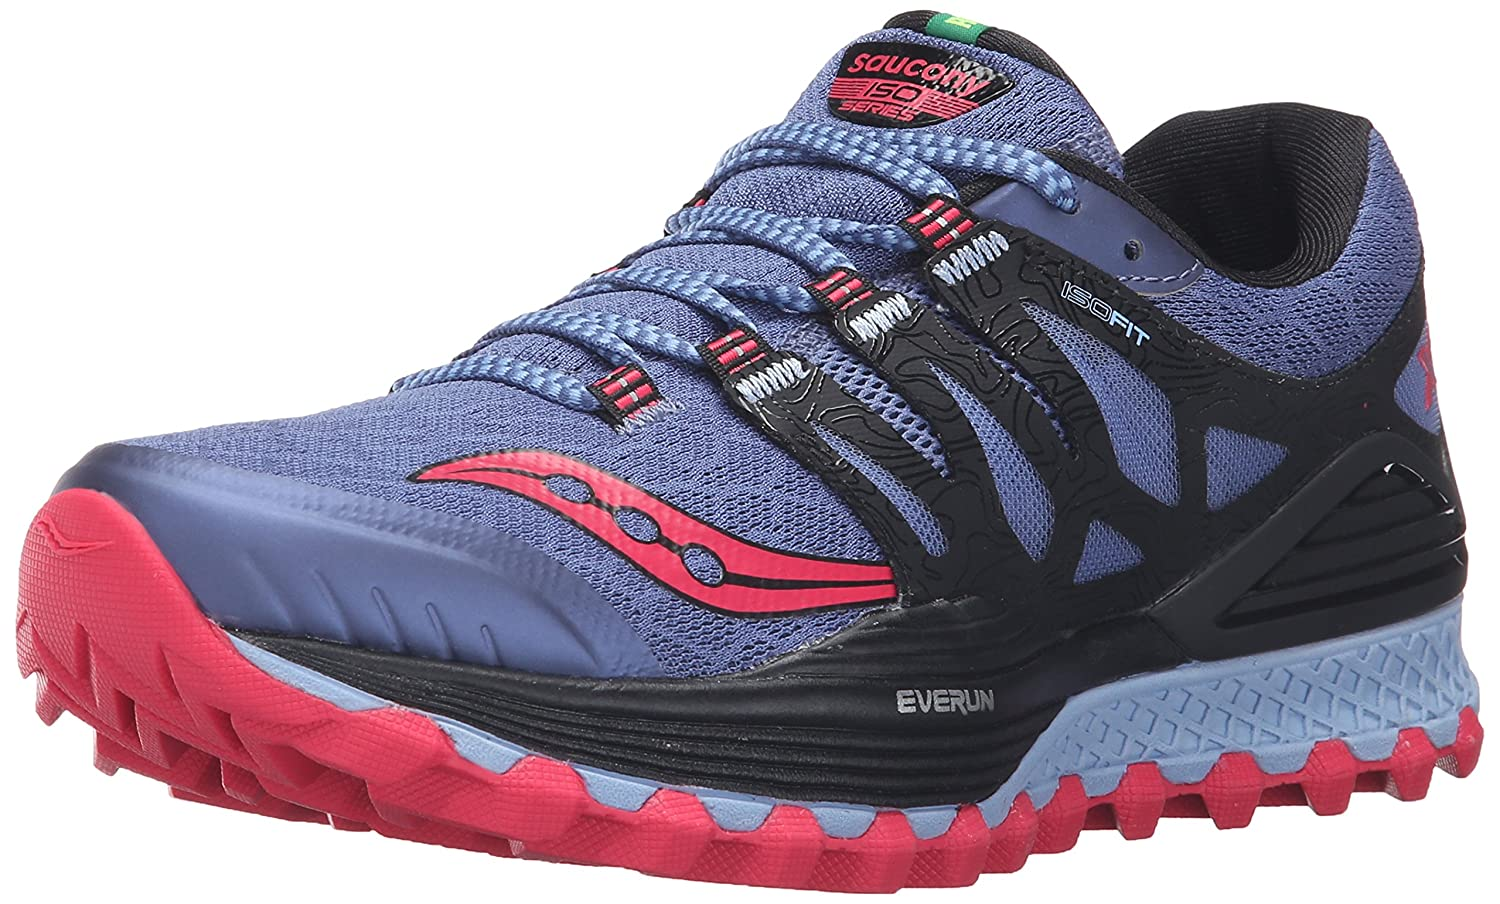 Saucony Women's Xodus Iso Trail Runner B018FAIRR4 8 B(M) US|Denim/Black/Pink